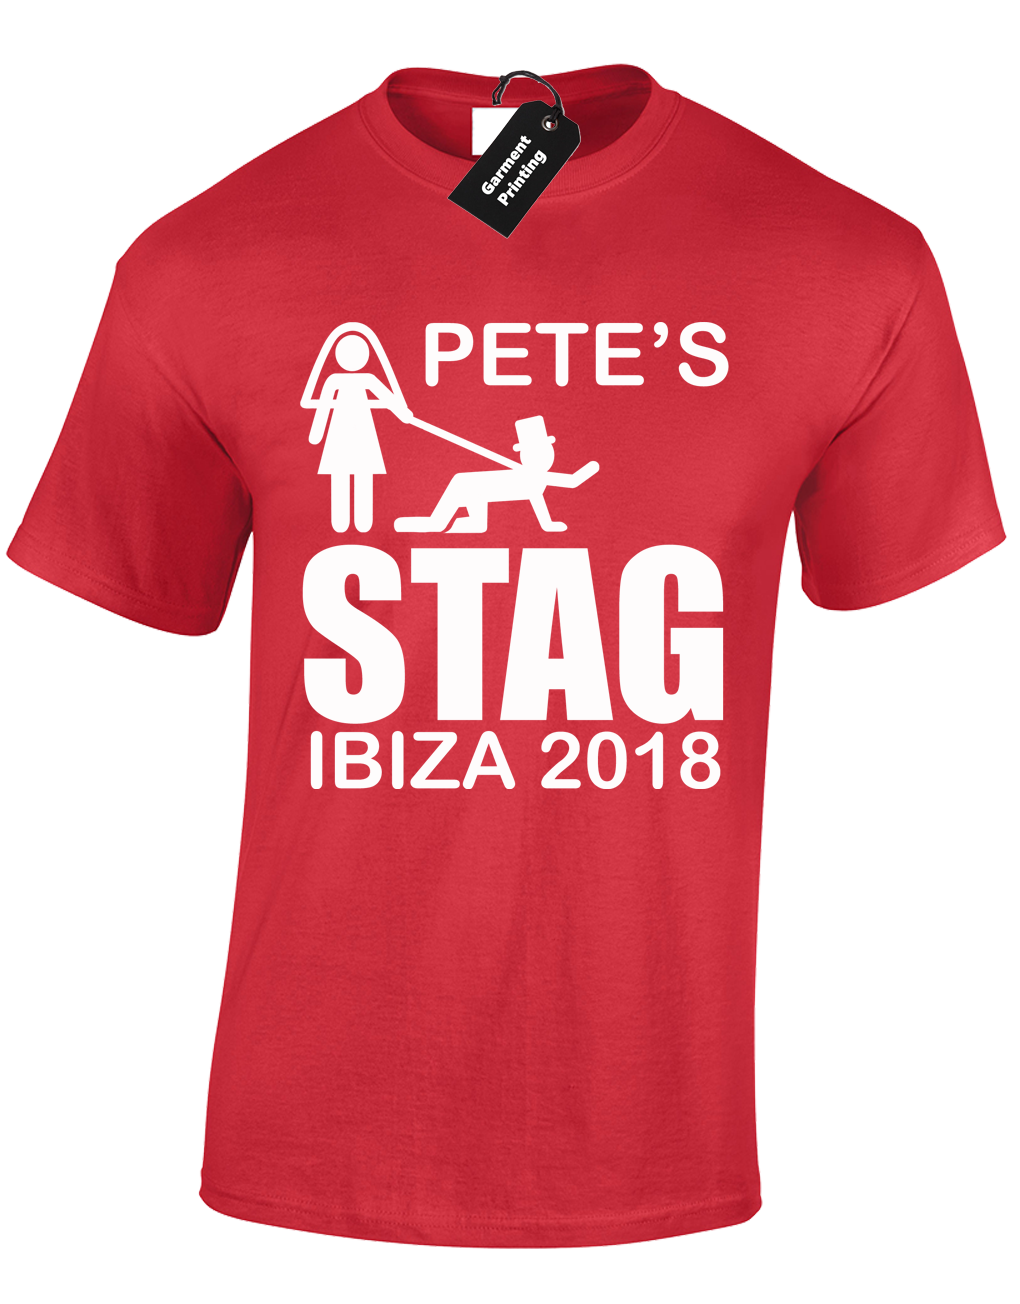 Personalised Custom Printed T Shirts T-Shirt Men Women Stag Hen Tee New